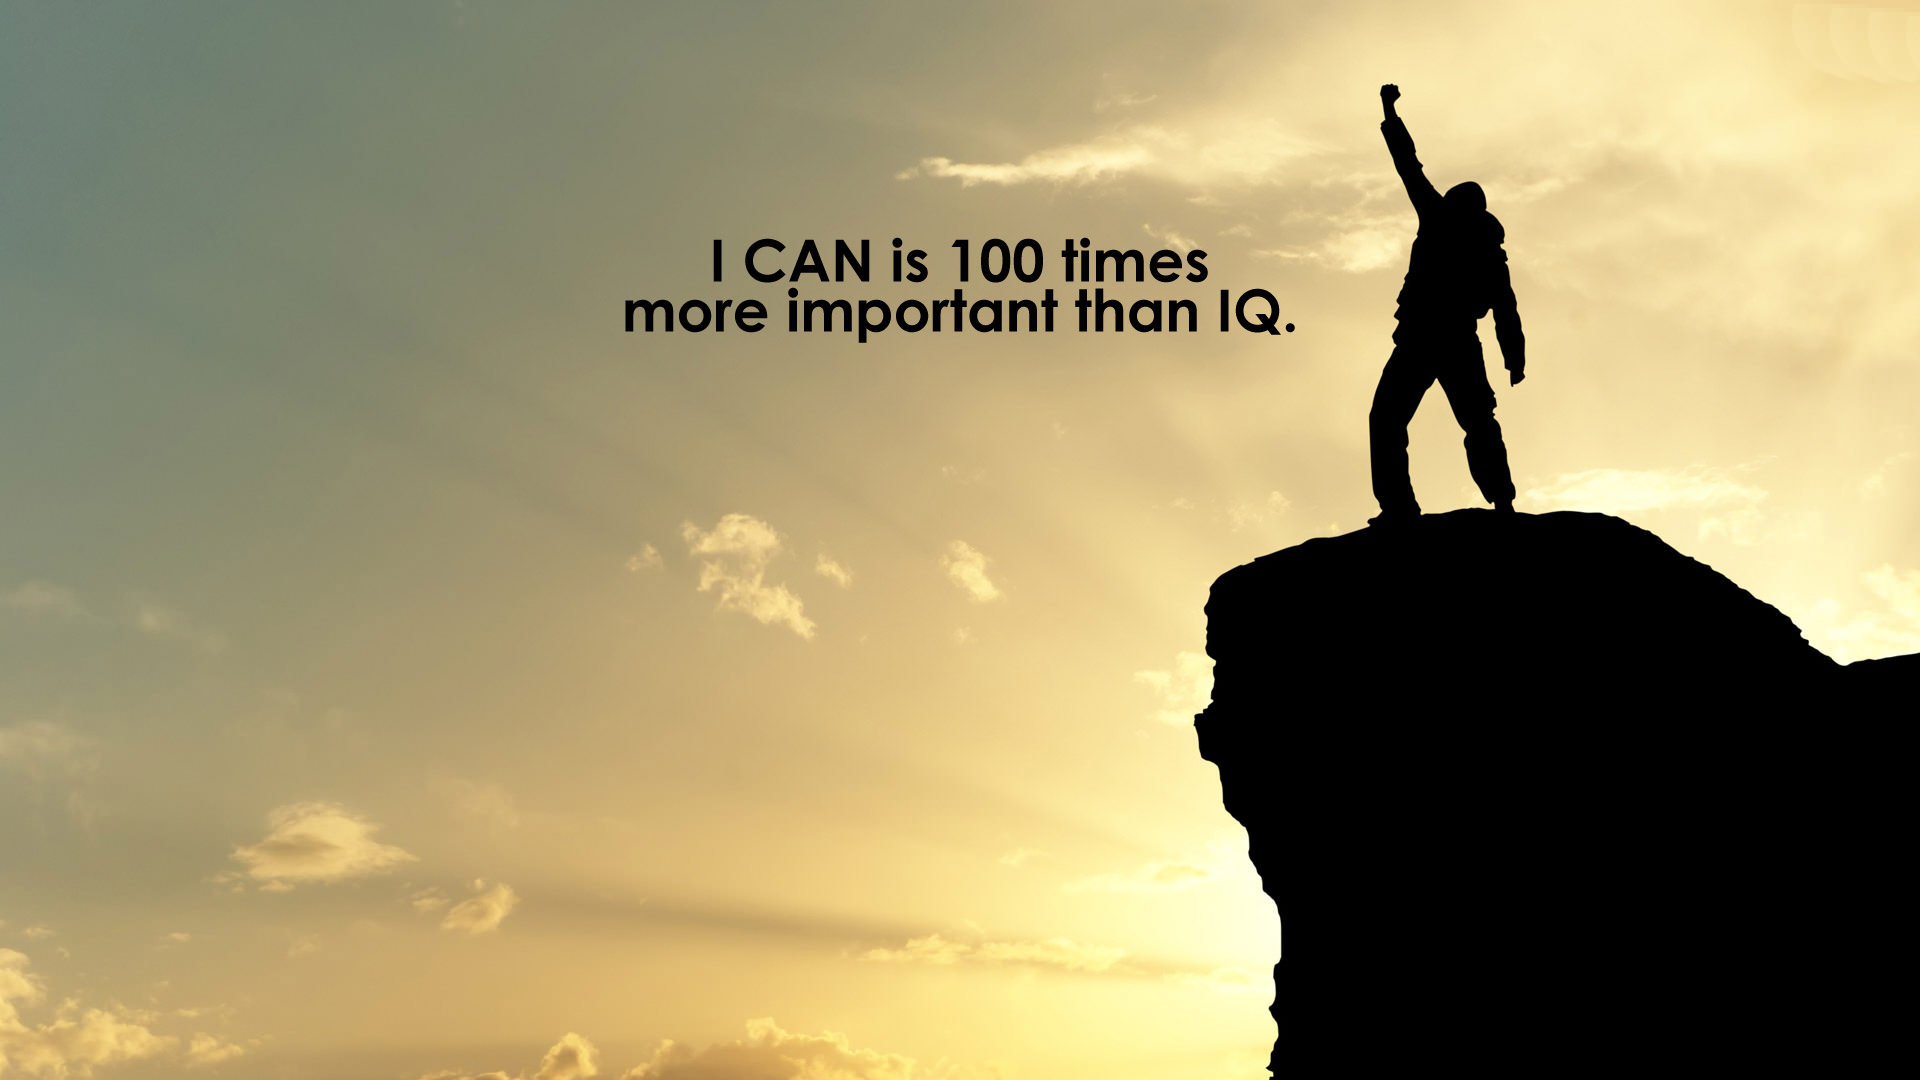 40 motivational and inspirational quotes posters i can is 100 times more important than iq